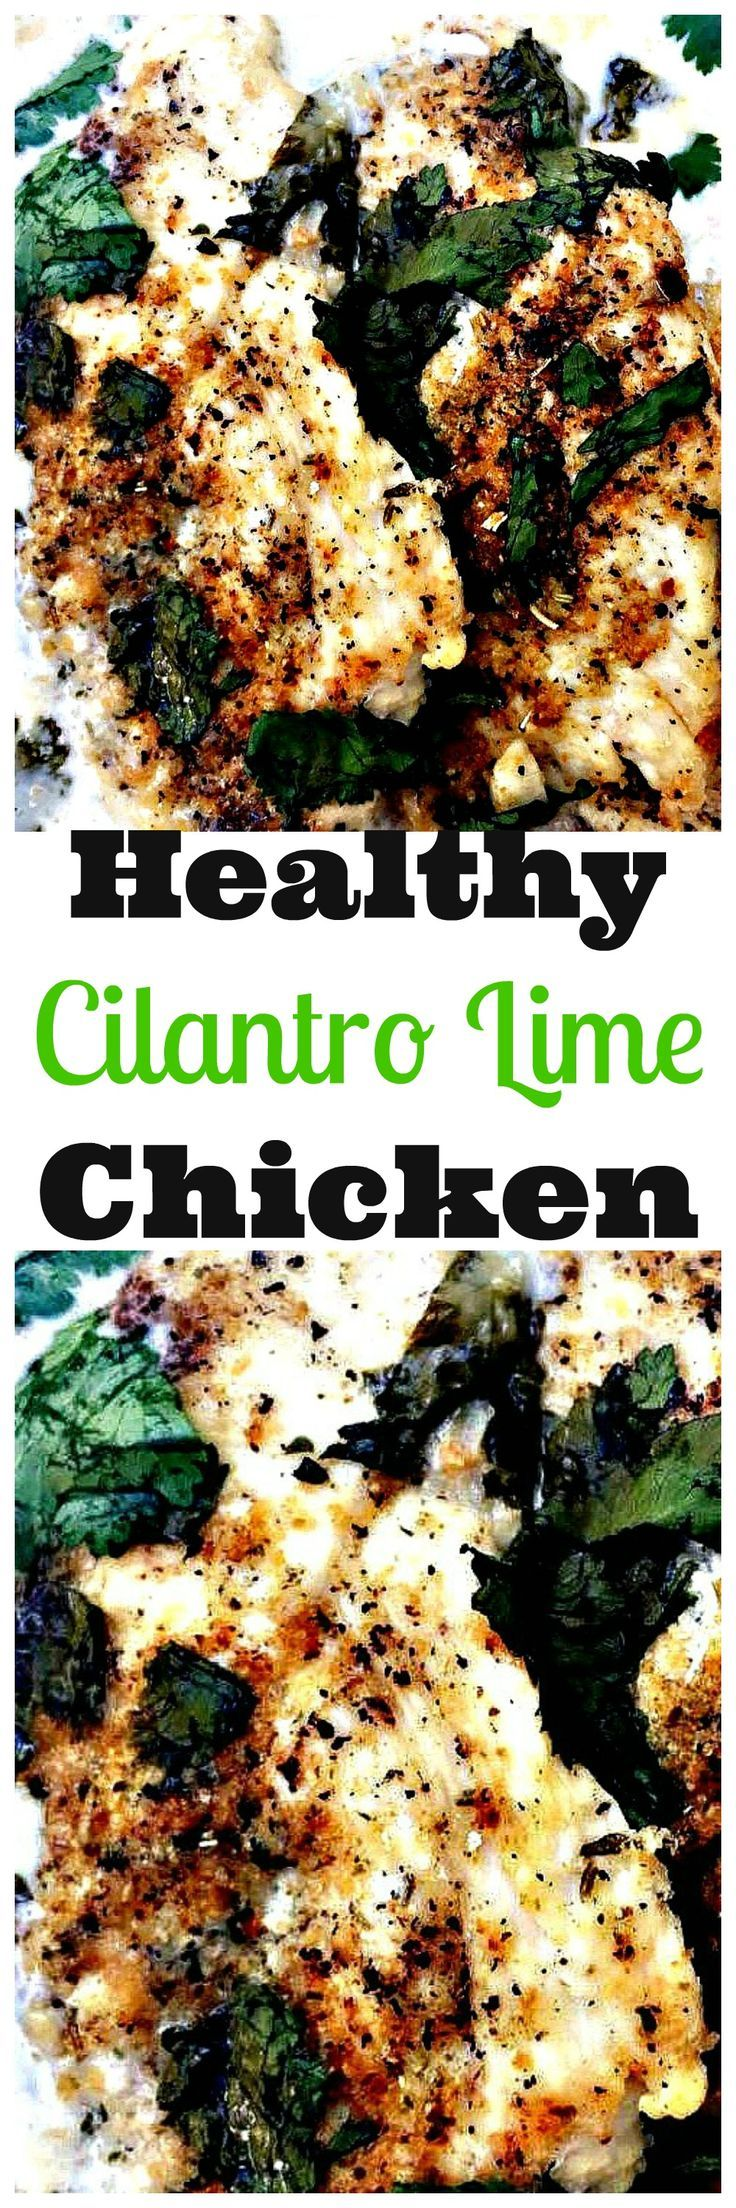 healthy, skinny, low-carb cilantro lime chicken